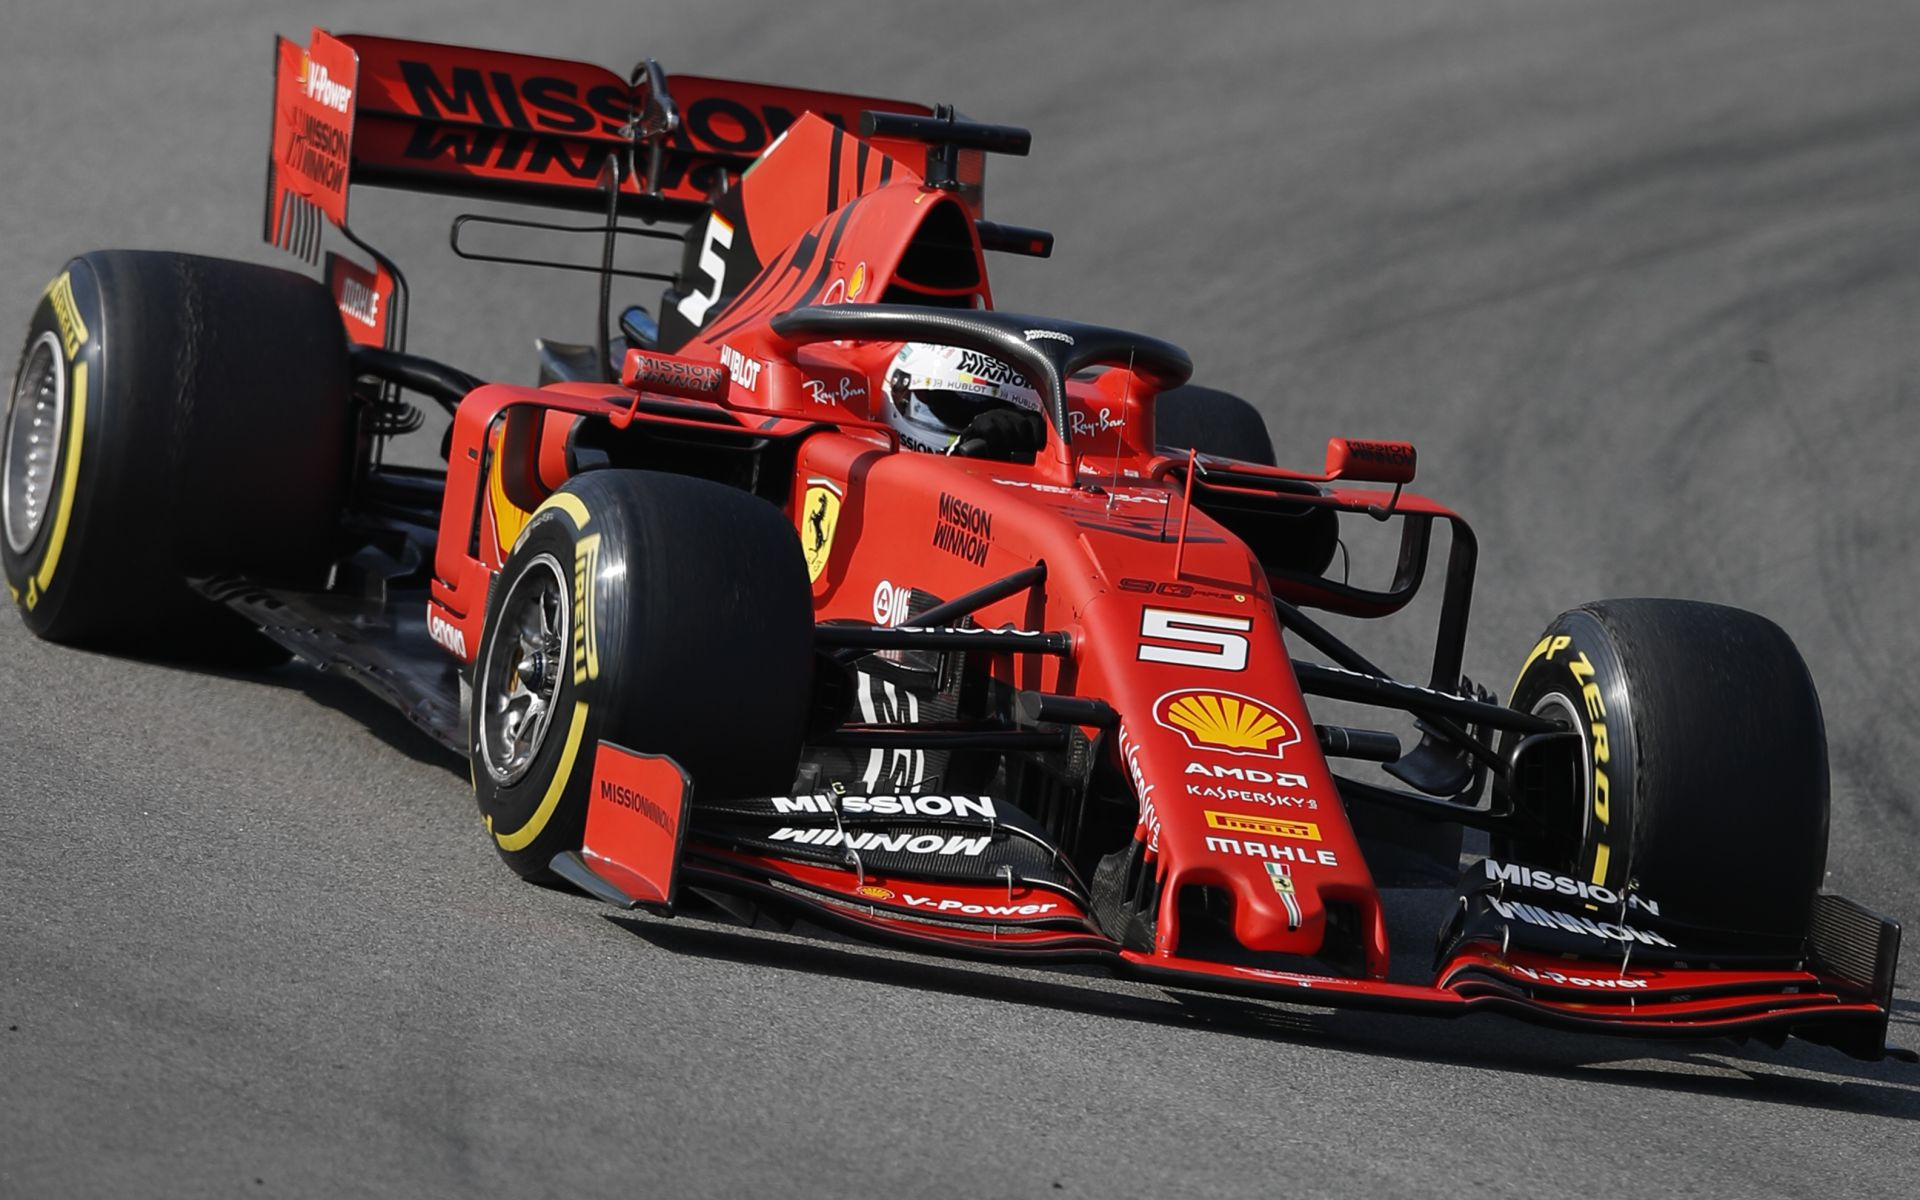 F1 Drivers' Championship 2019 betting